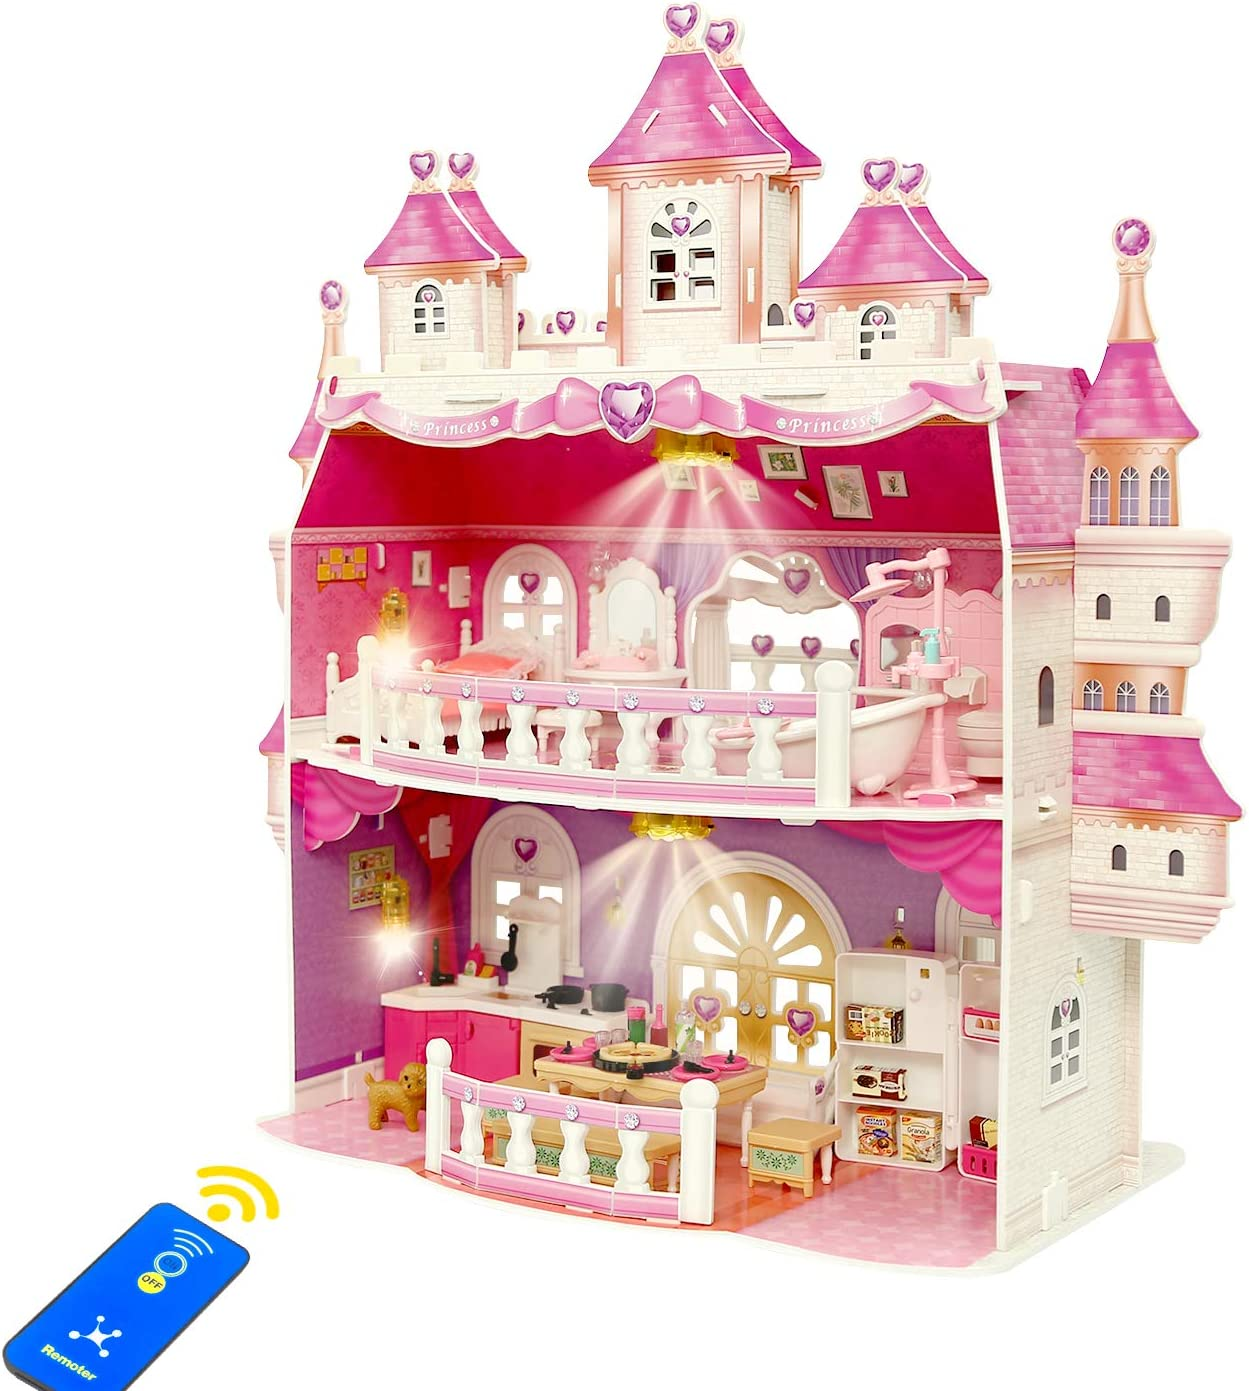 KAINSY Dollhouse for Girls, Large Castle Two-Story Playhouse Dolls Dream House Playset with Dolls, Lights, Furniture and Accessories Kit, Included Living Room, Bedroom, Kitchen and Bathroom, Pink